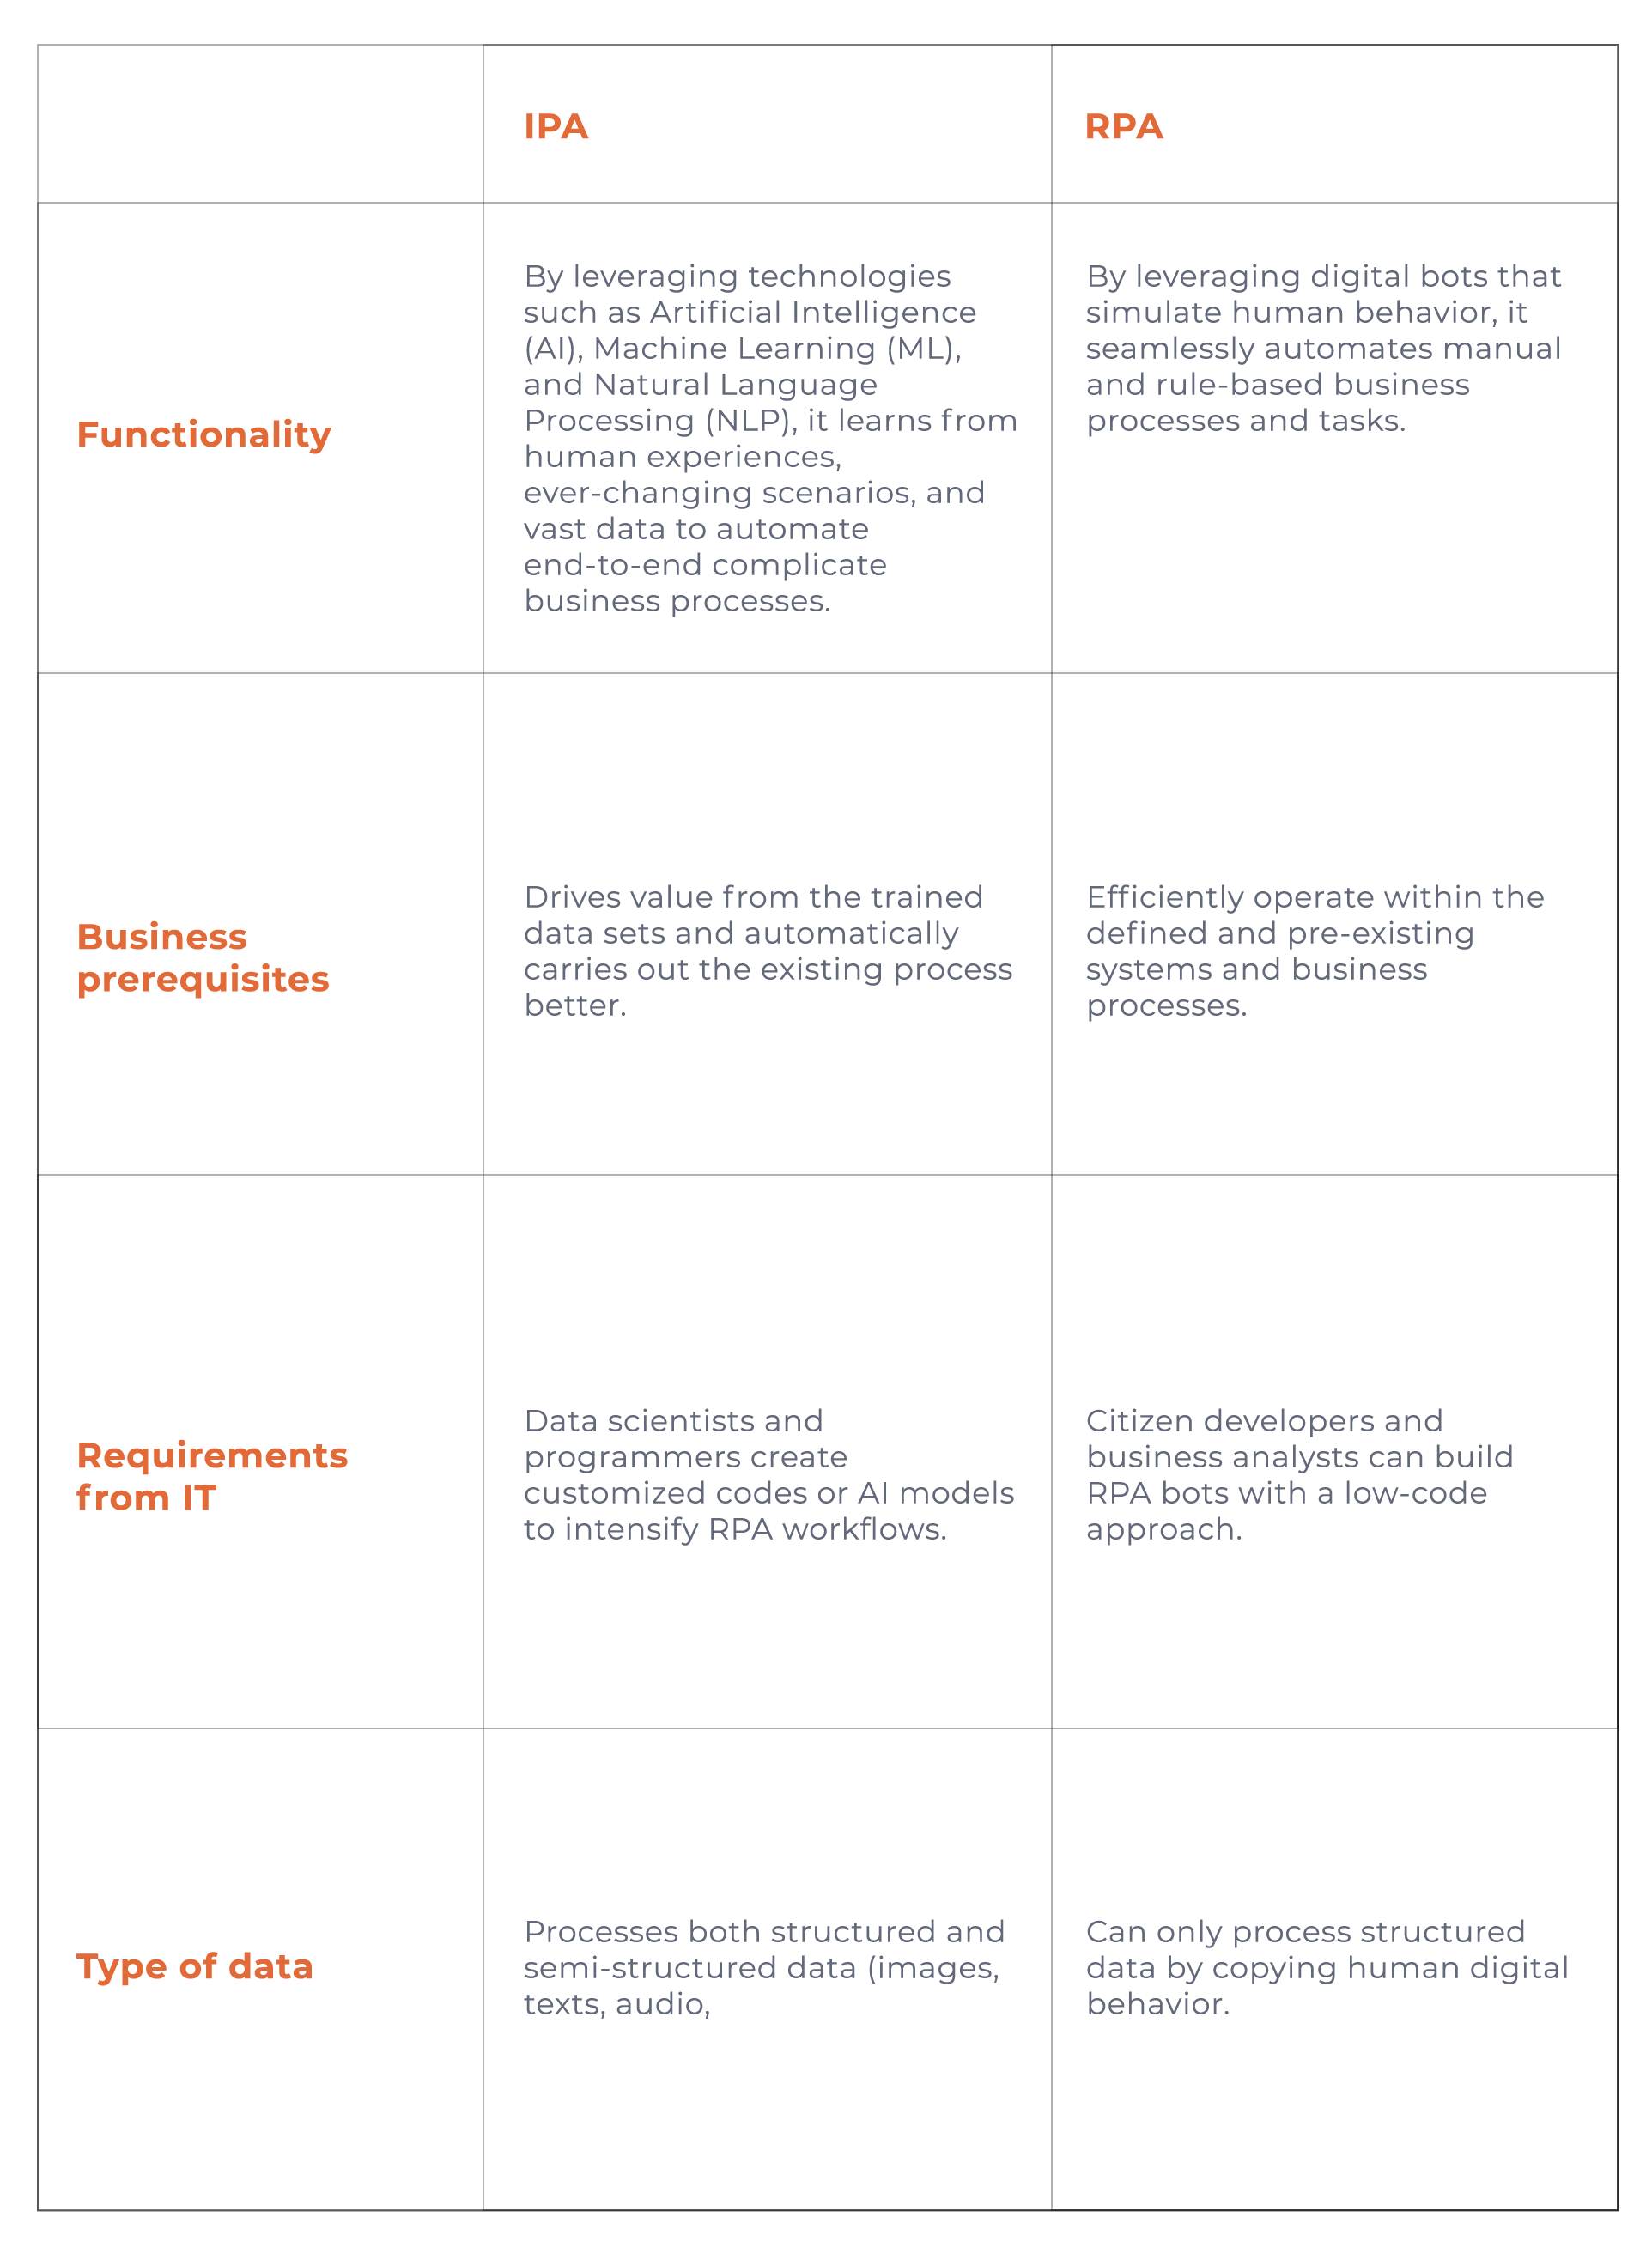 Difference between IPA and RPA